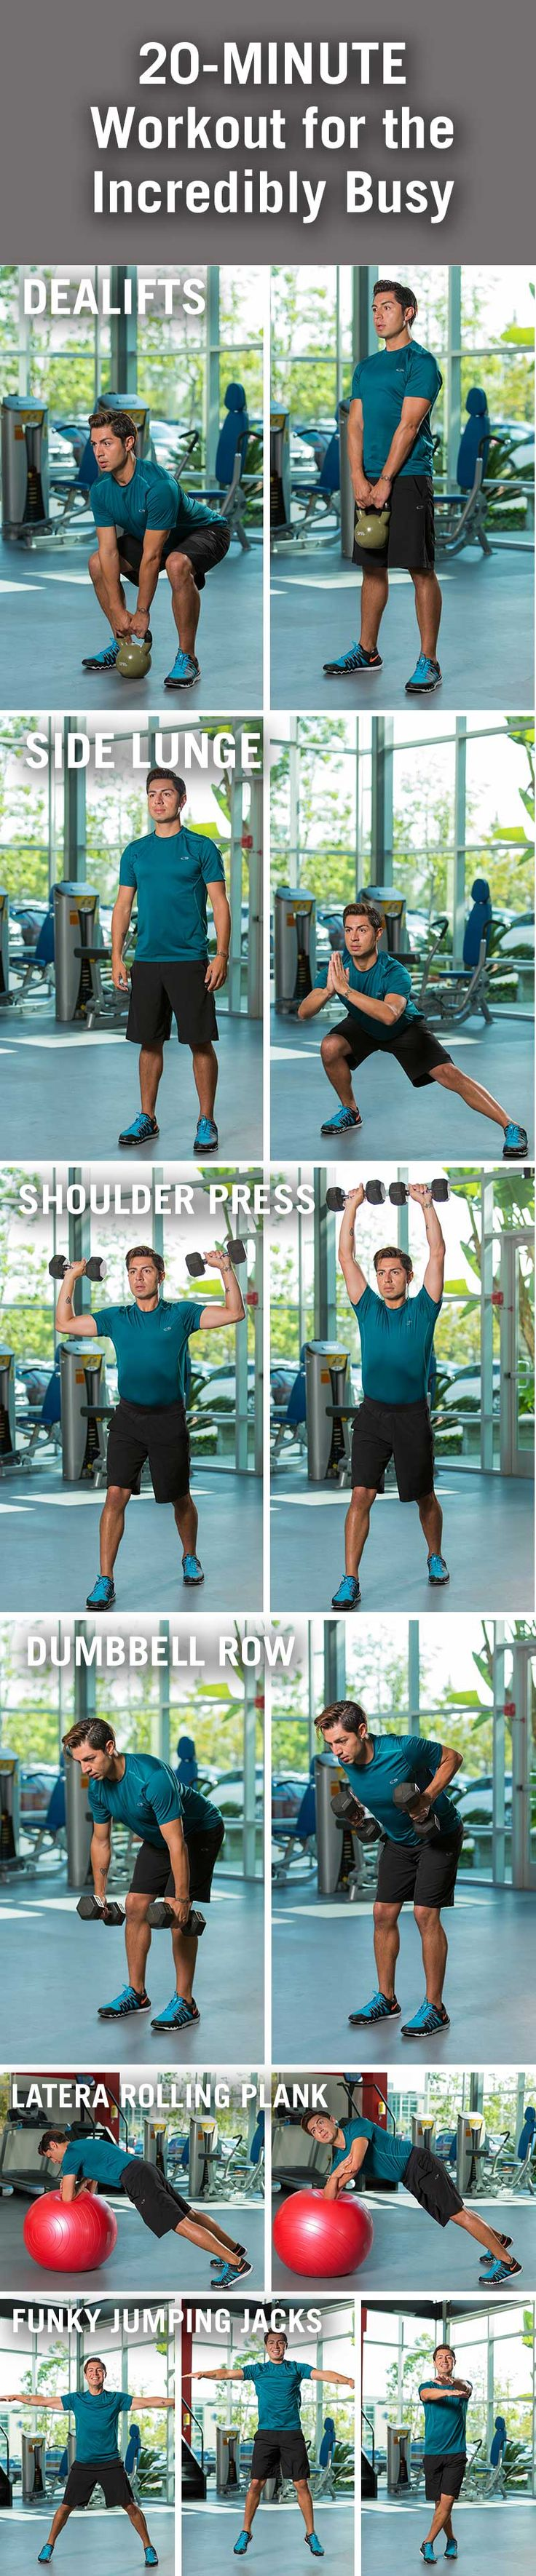 230 best images about ACE Full Body Exercises on Pinterest ...